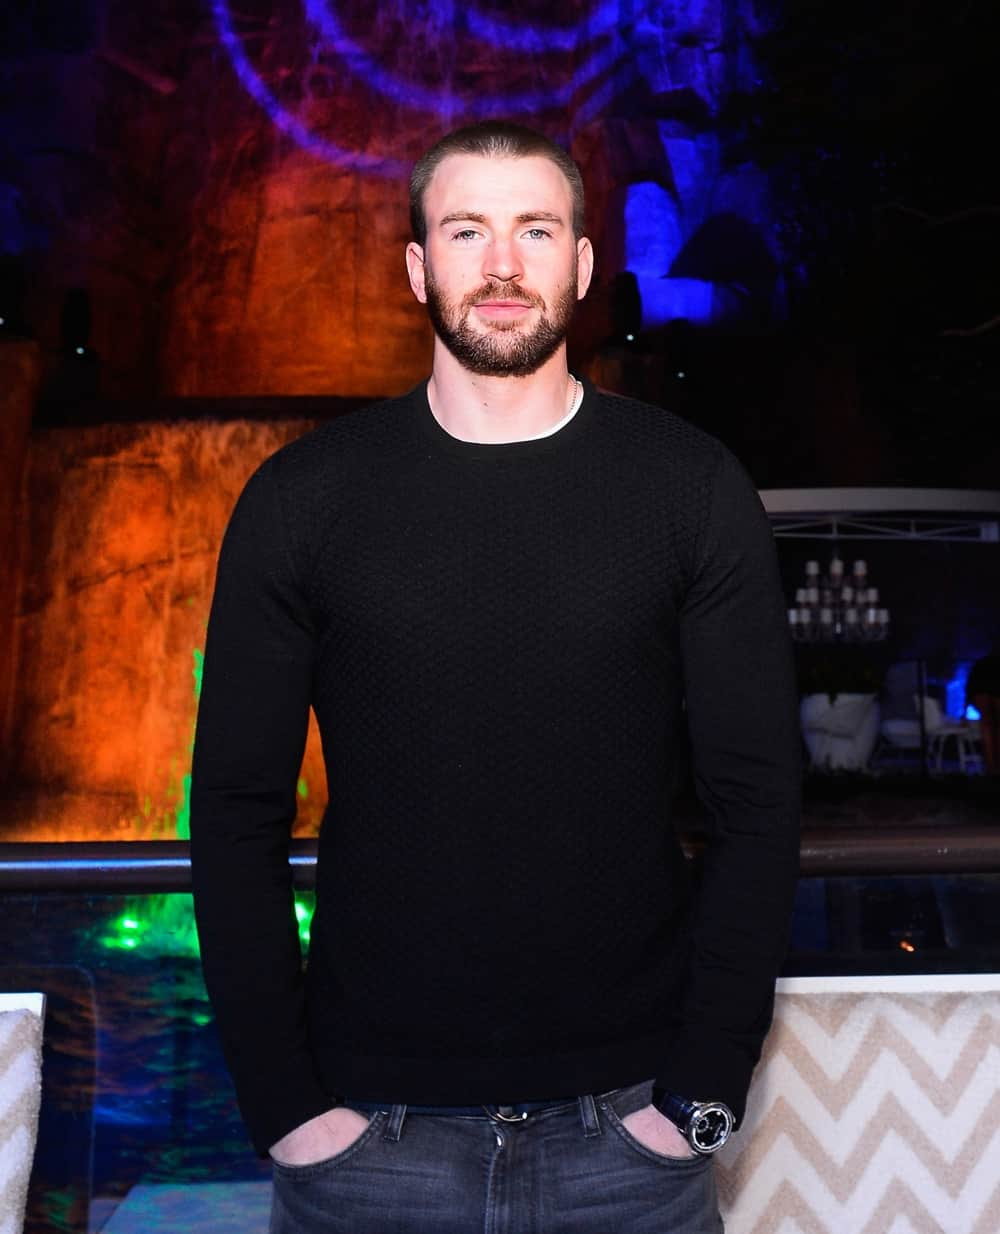 Chris Evans Billboard Music Awards Kick-Off Party At Intrigue Nightclub, Wynn Las Vegas, Hosted By Billboard's John Amato And DuJour Media's Jason Binn